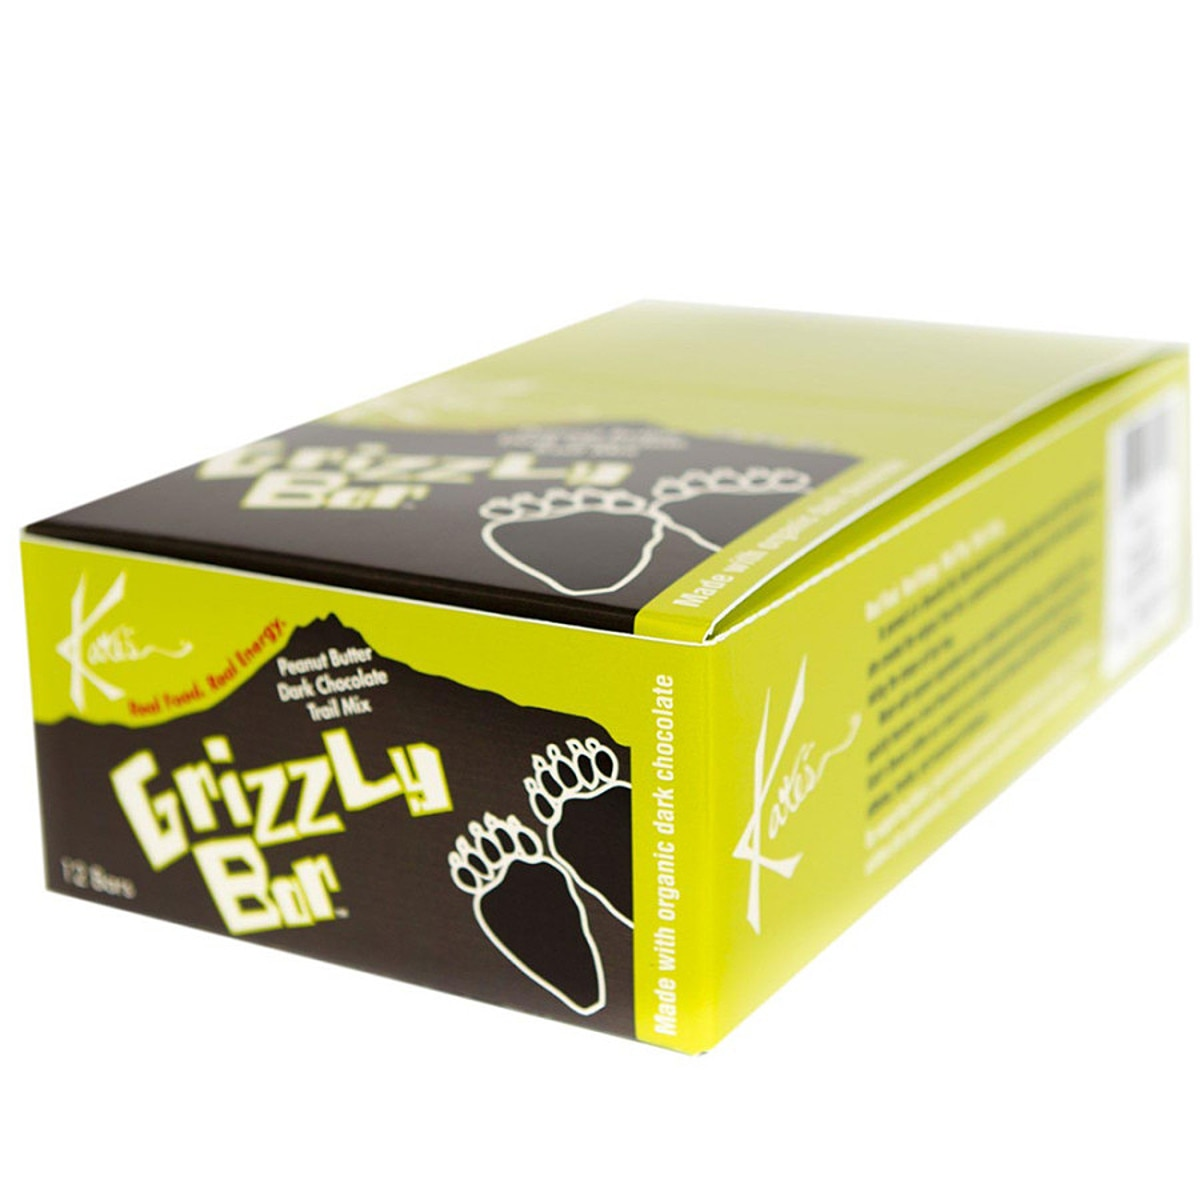 Kates Real Food Grizzly Bars One Color 12 bars